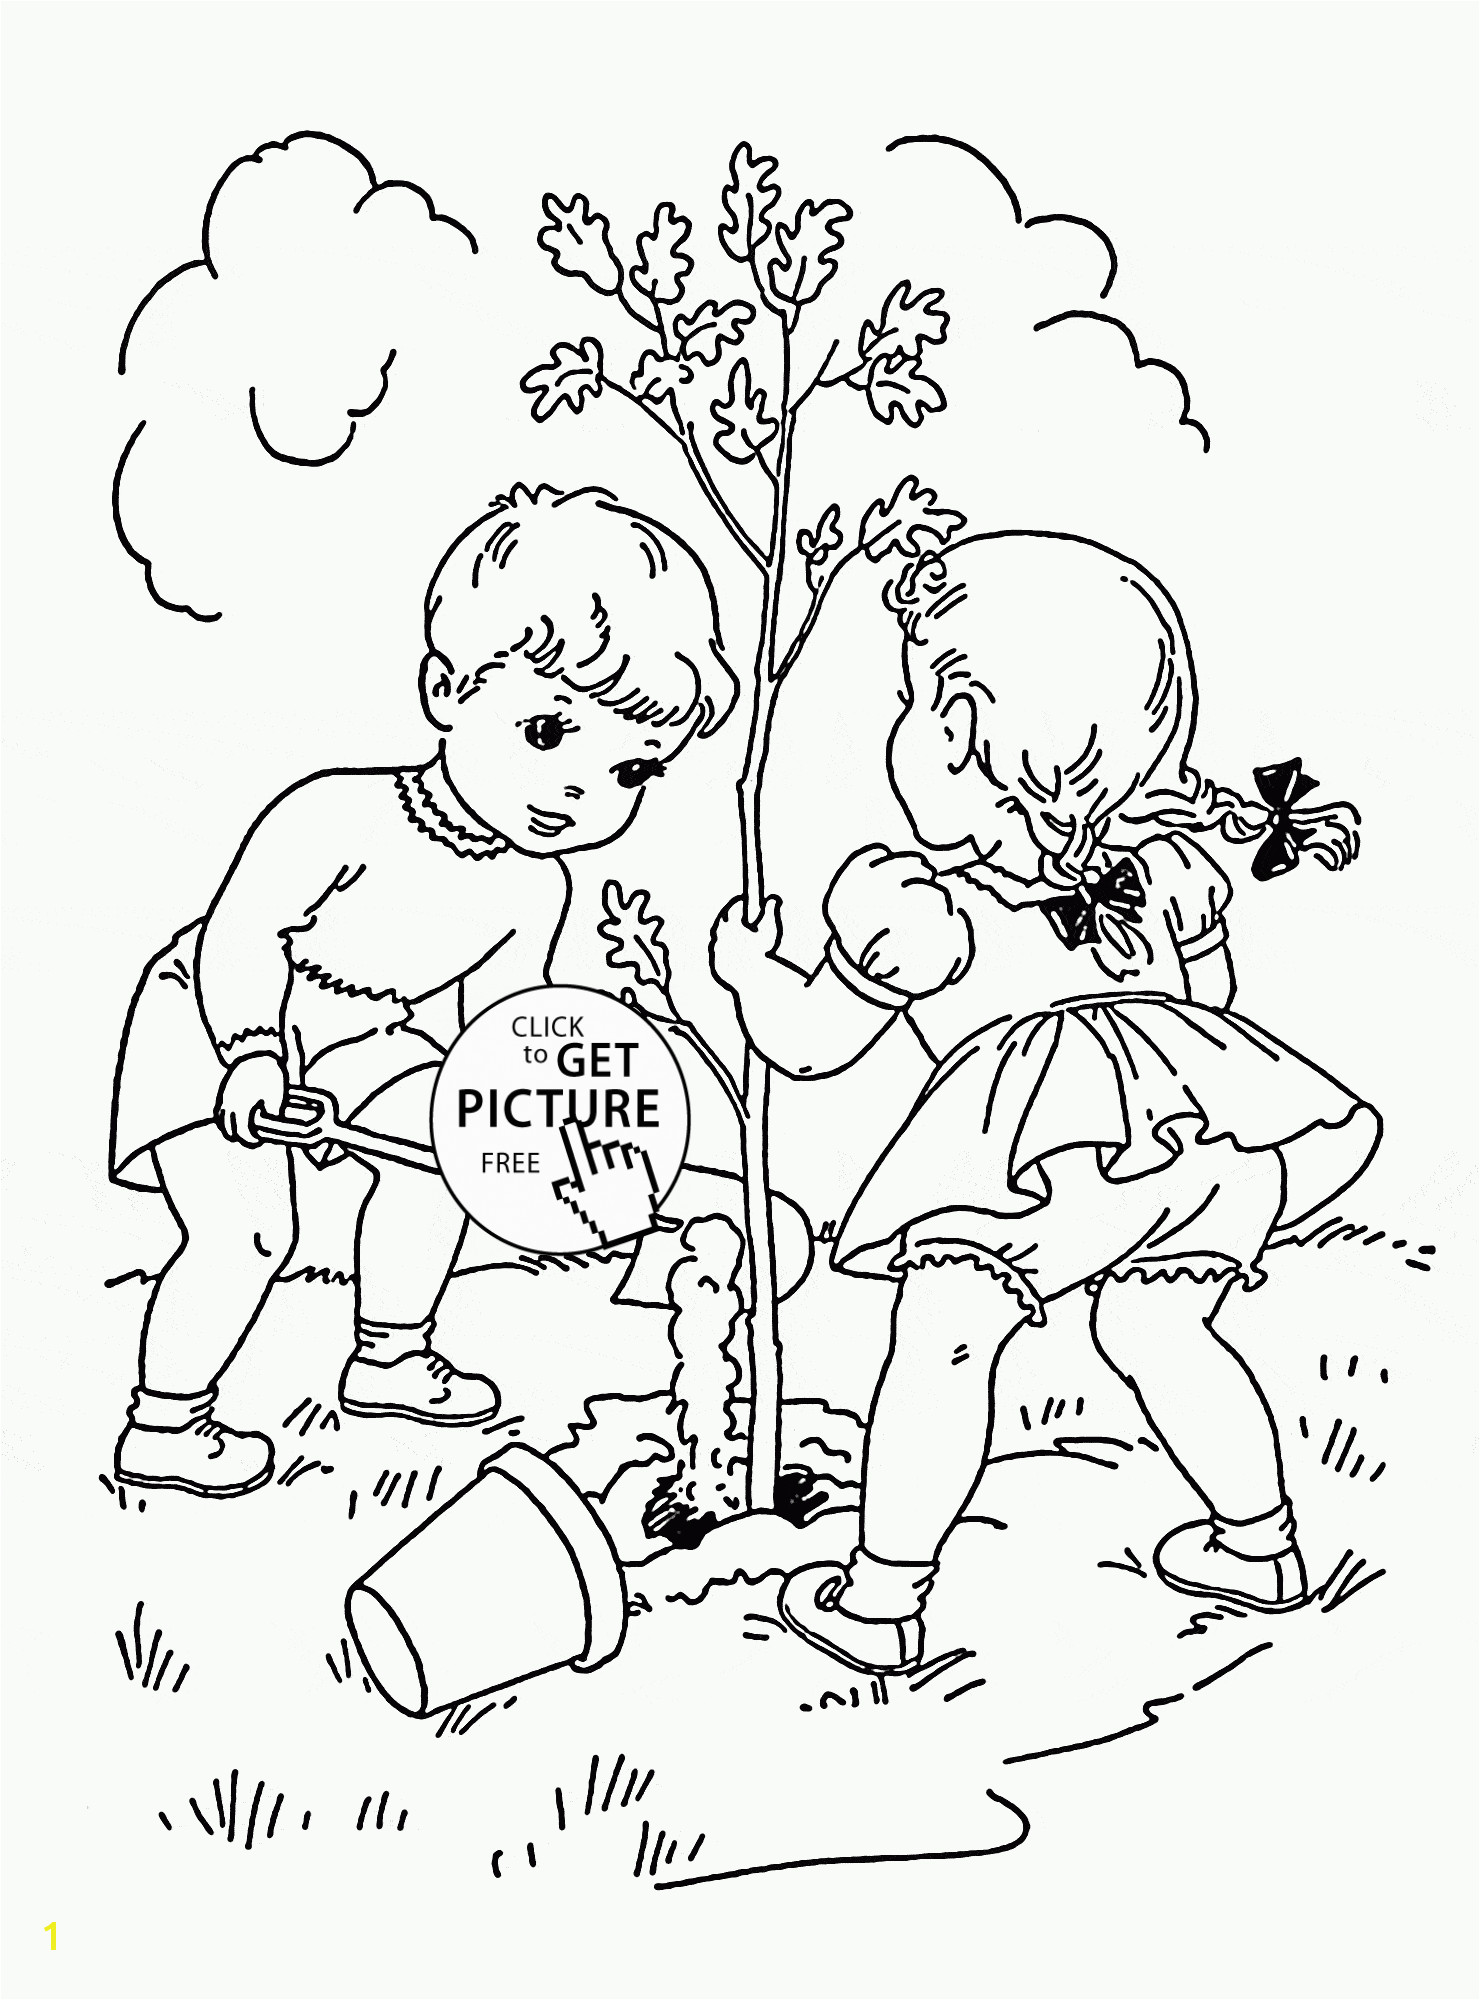 Children Plant Tree coloring page for kids spring coloring pages printables free Wuppsy